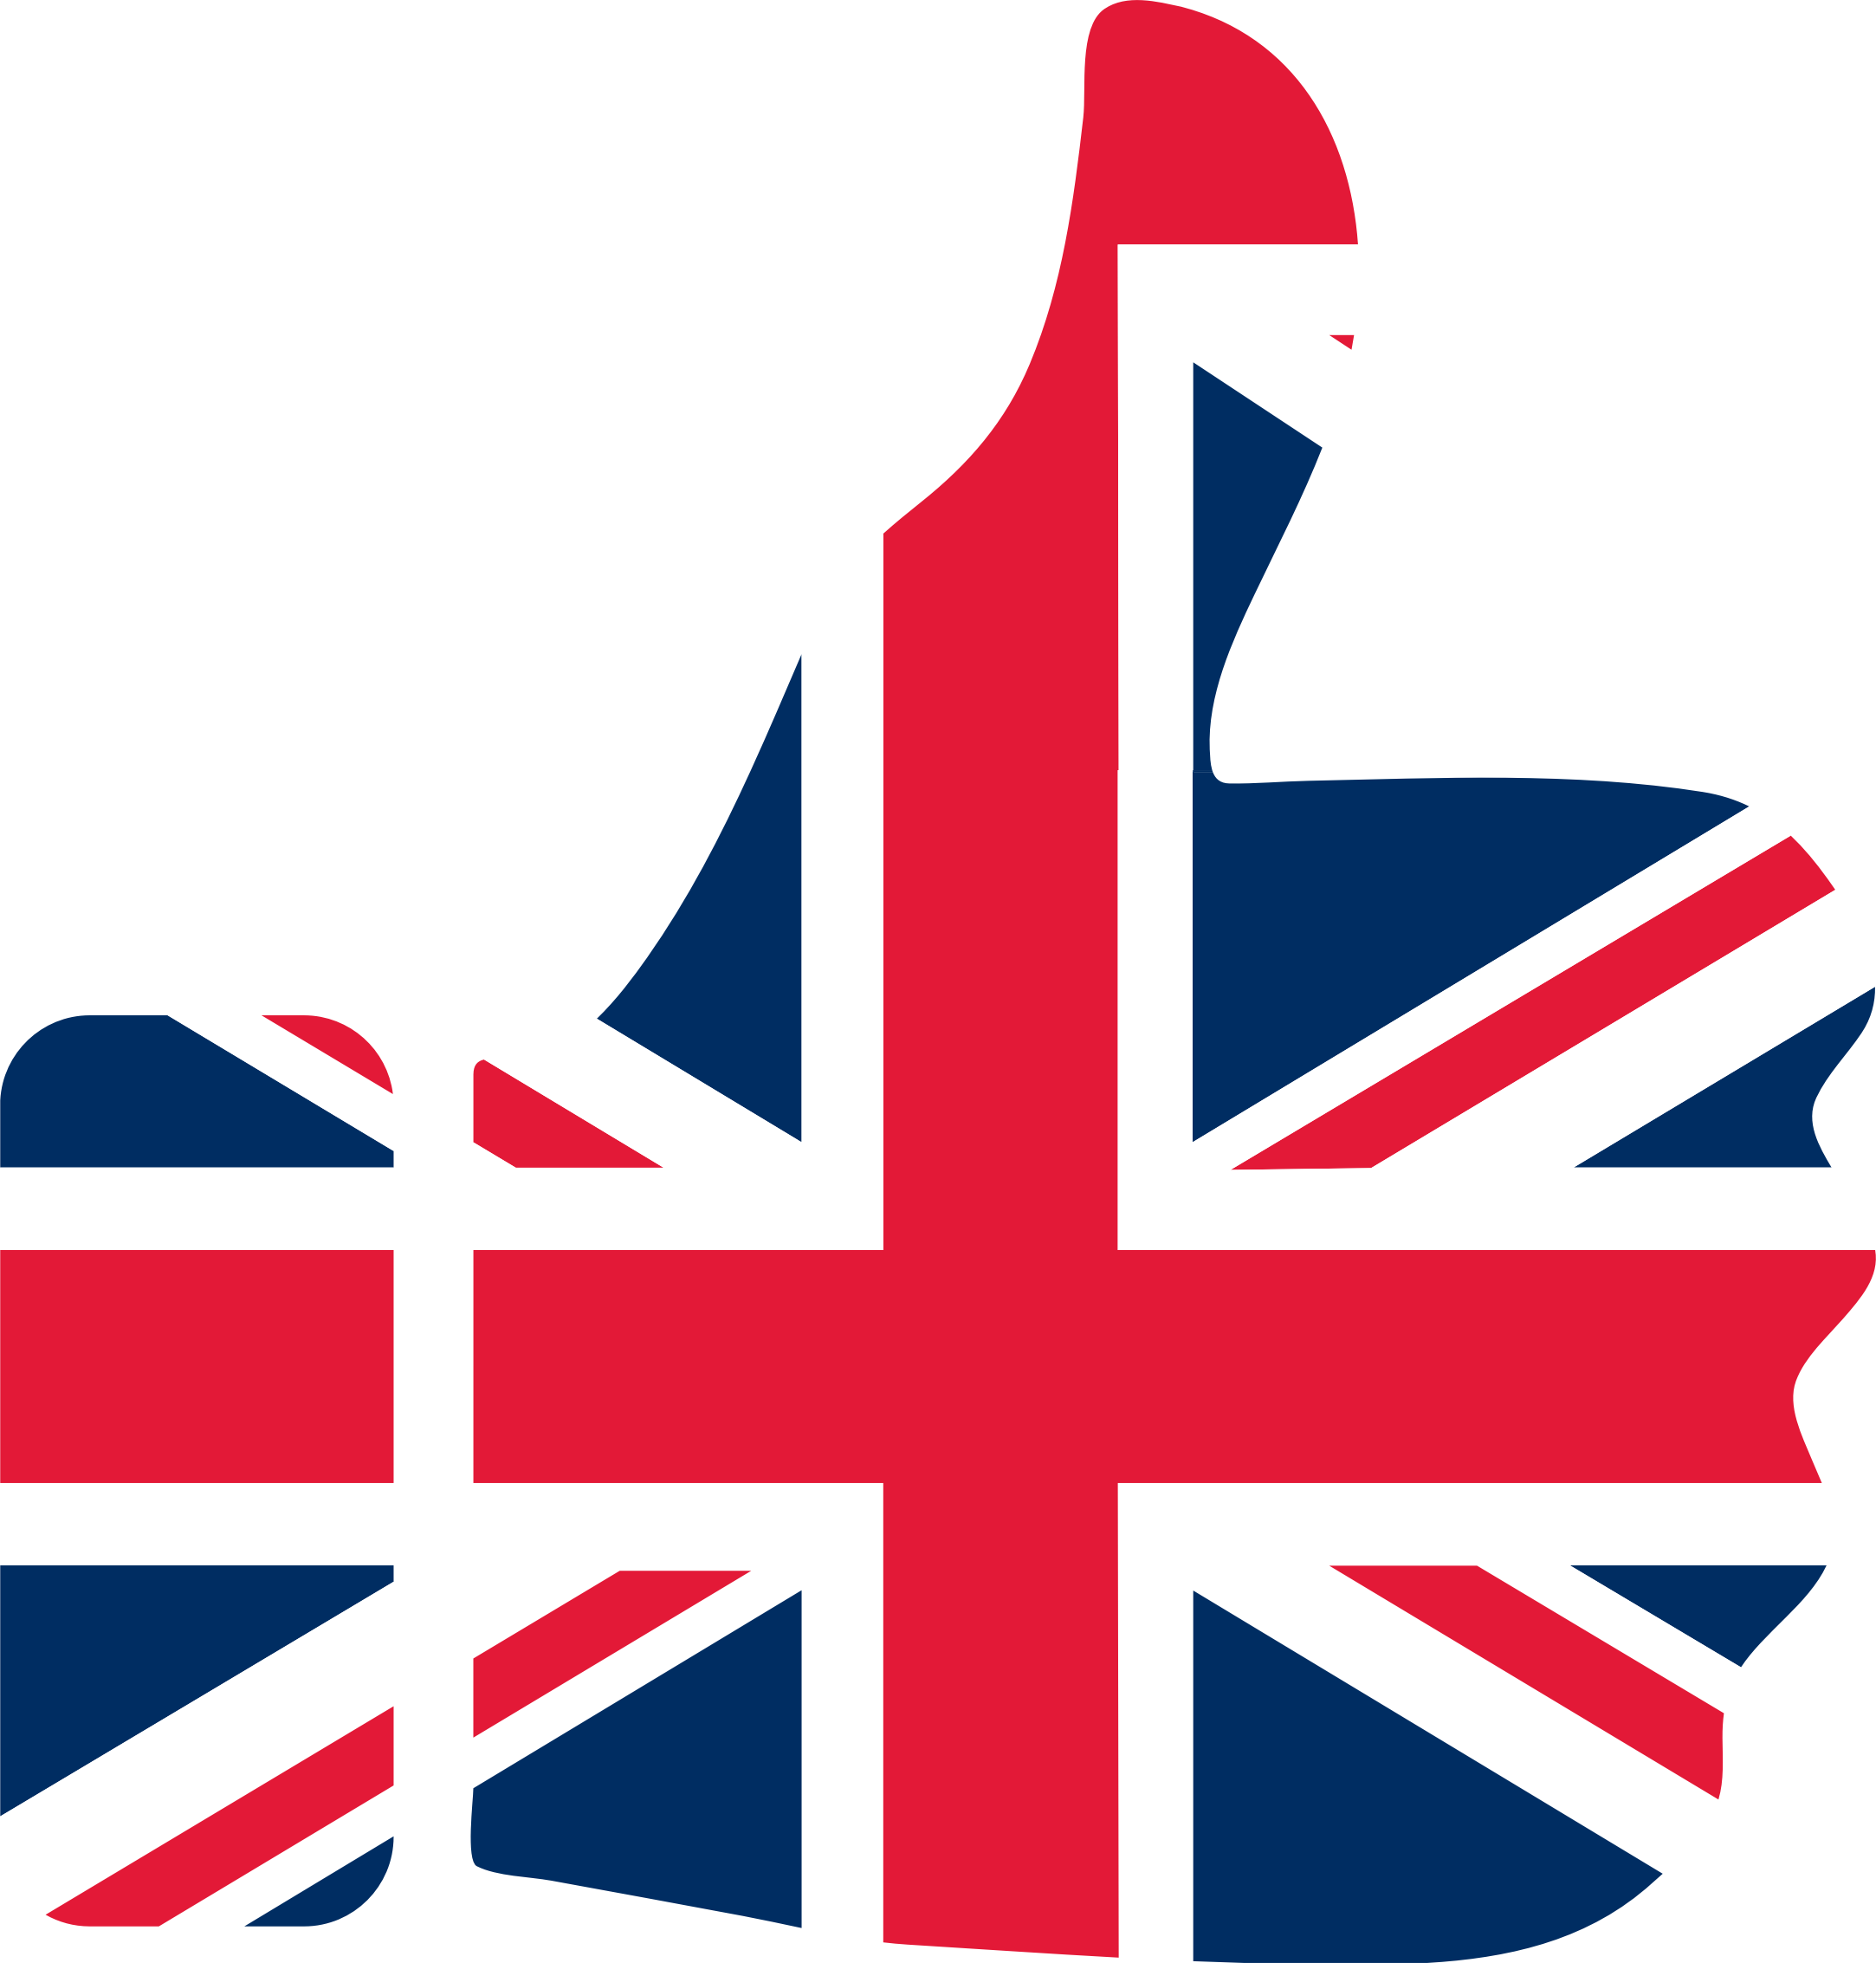 British Flag Clipart at GetDrawings.com.